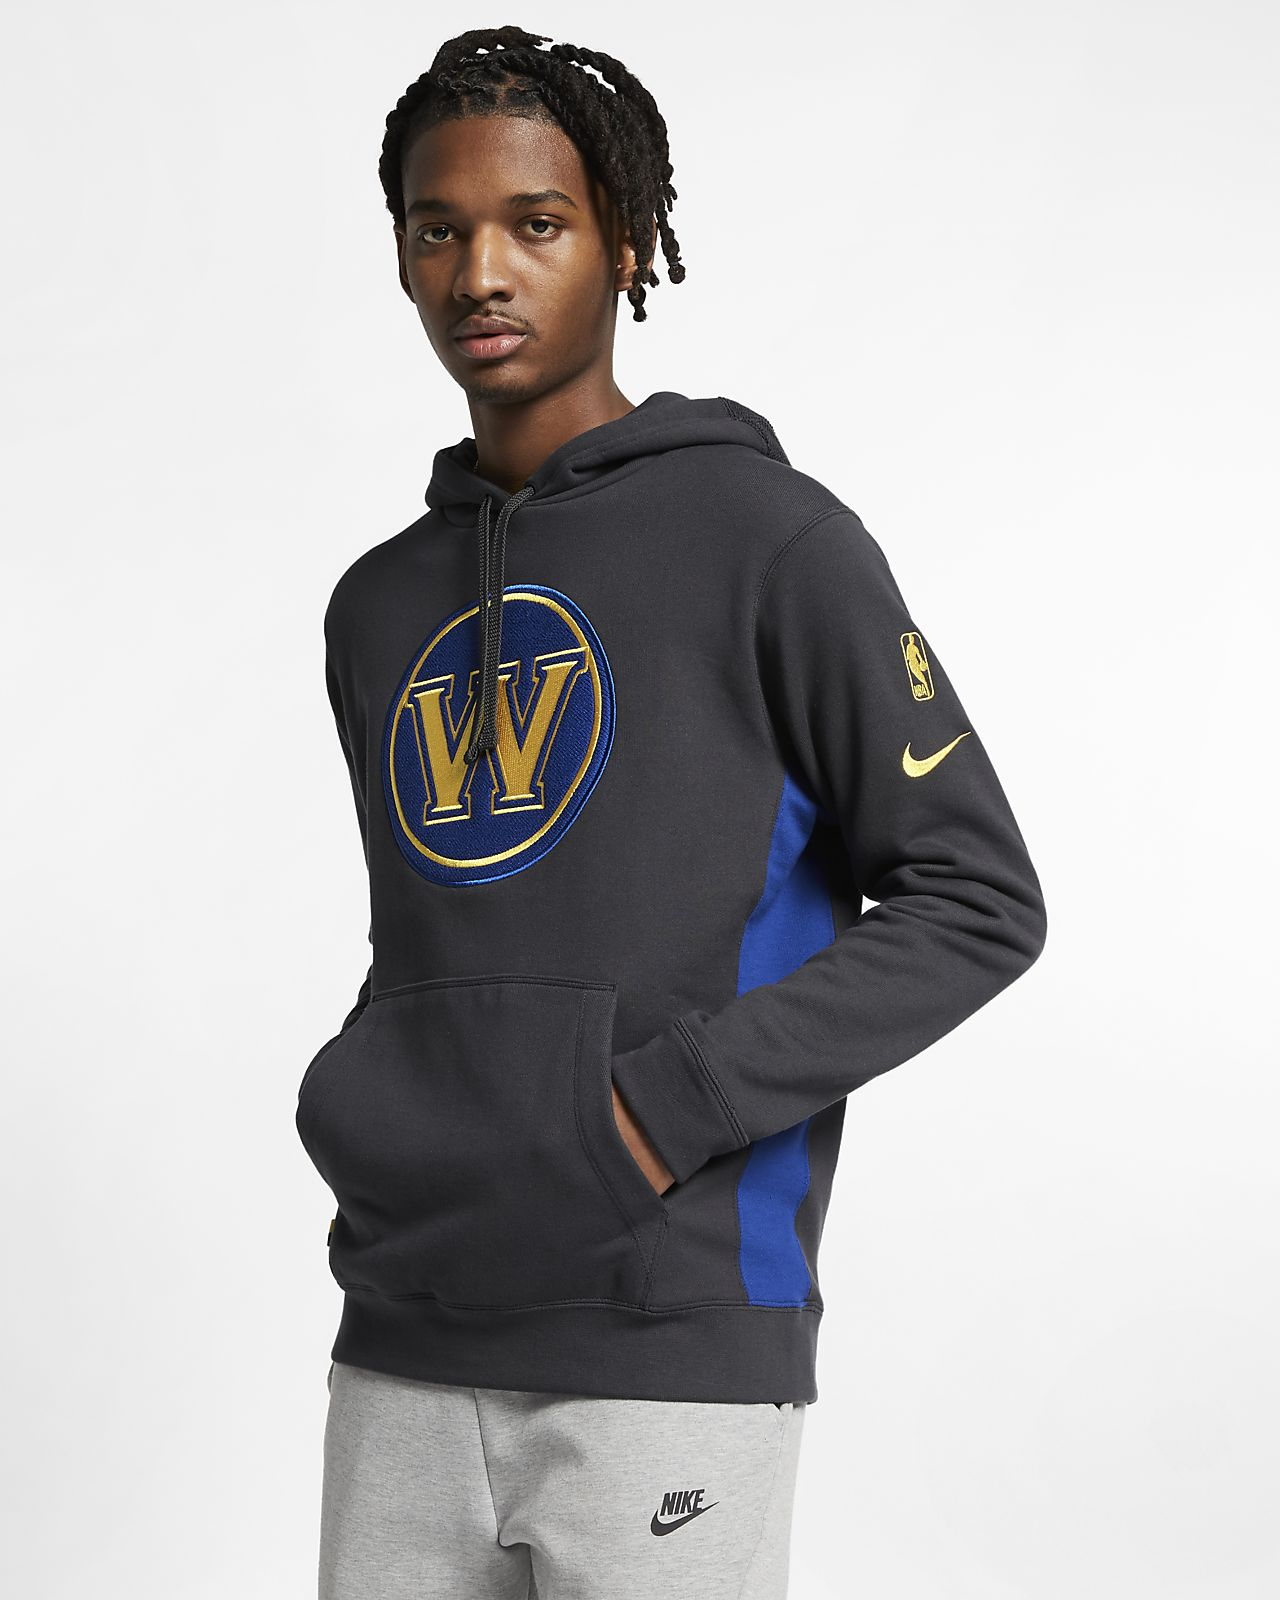 8684b0cd46e1 Golden State Warriors Nike Men s NBA Hoodie. Nike.com GB